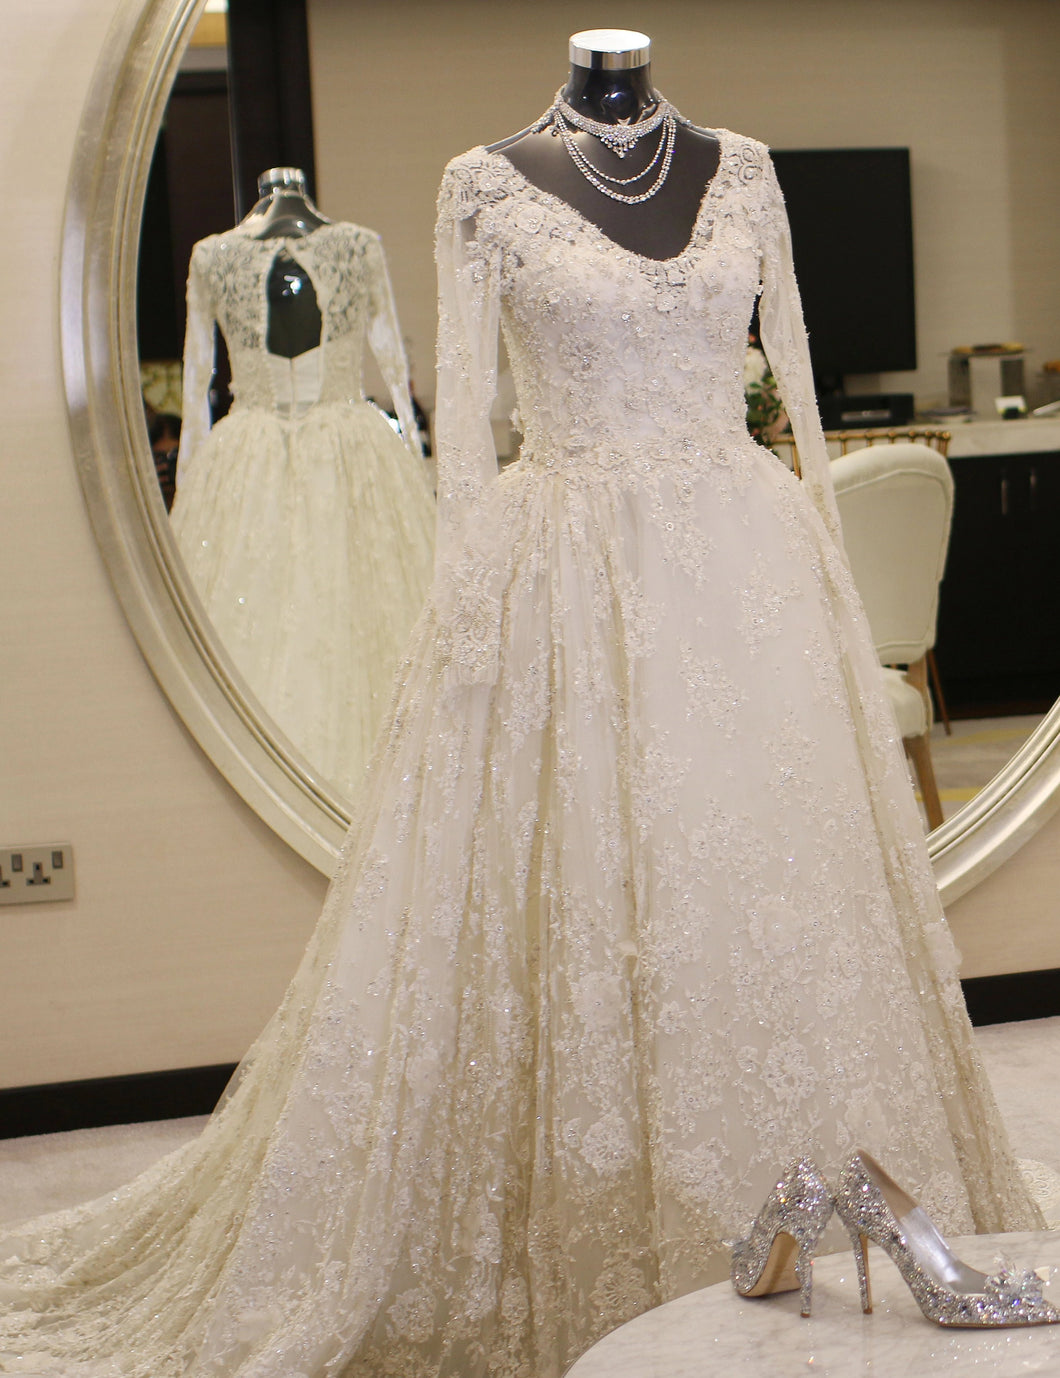 Zuhair Murad 'Custom' size 4 used wedding dress front view on mannequin